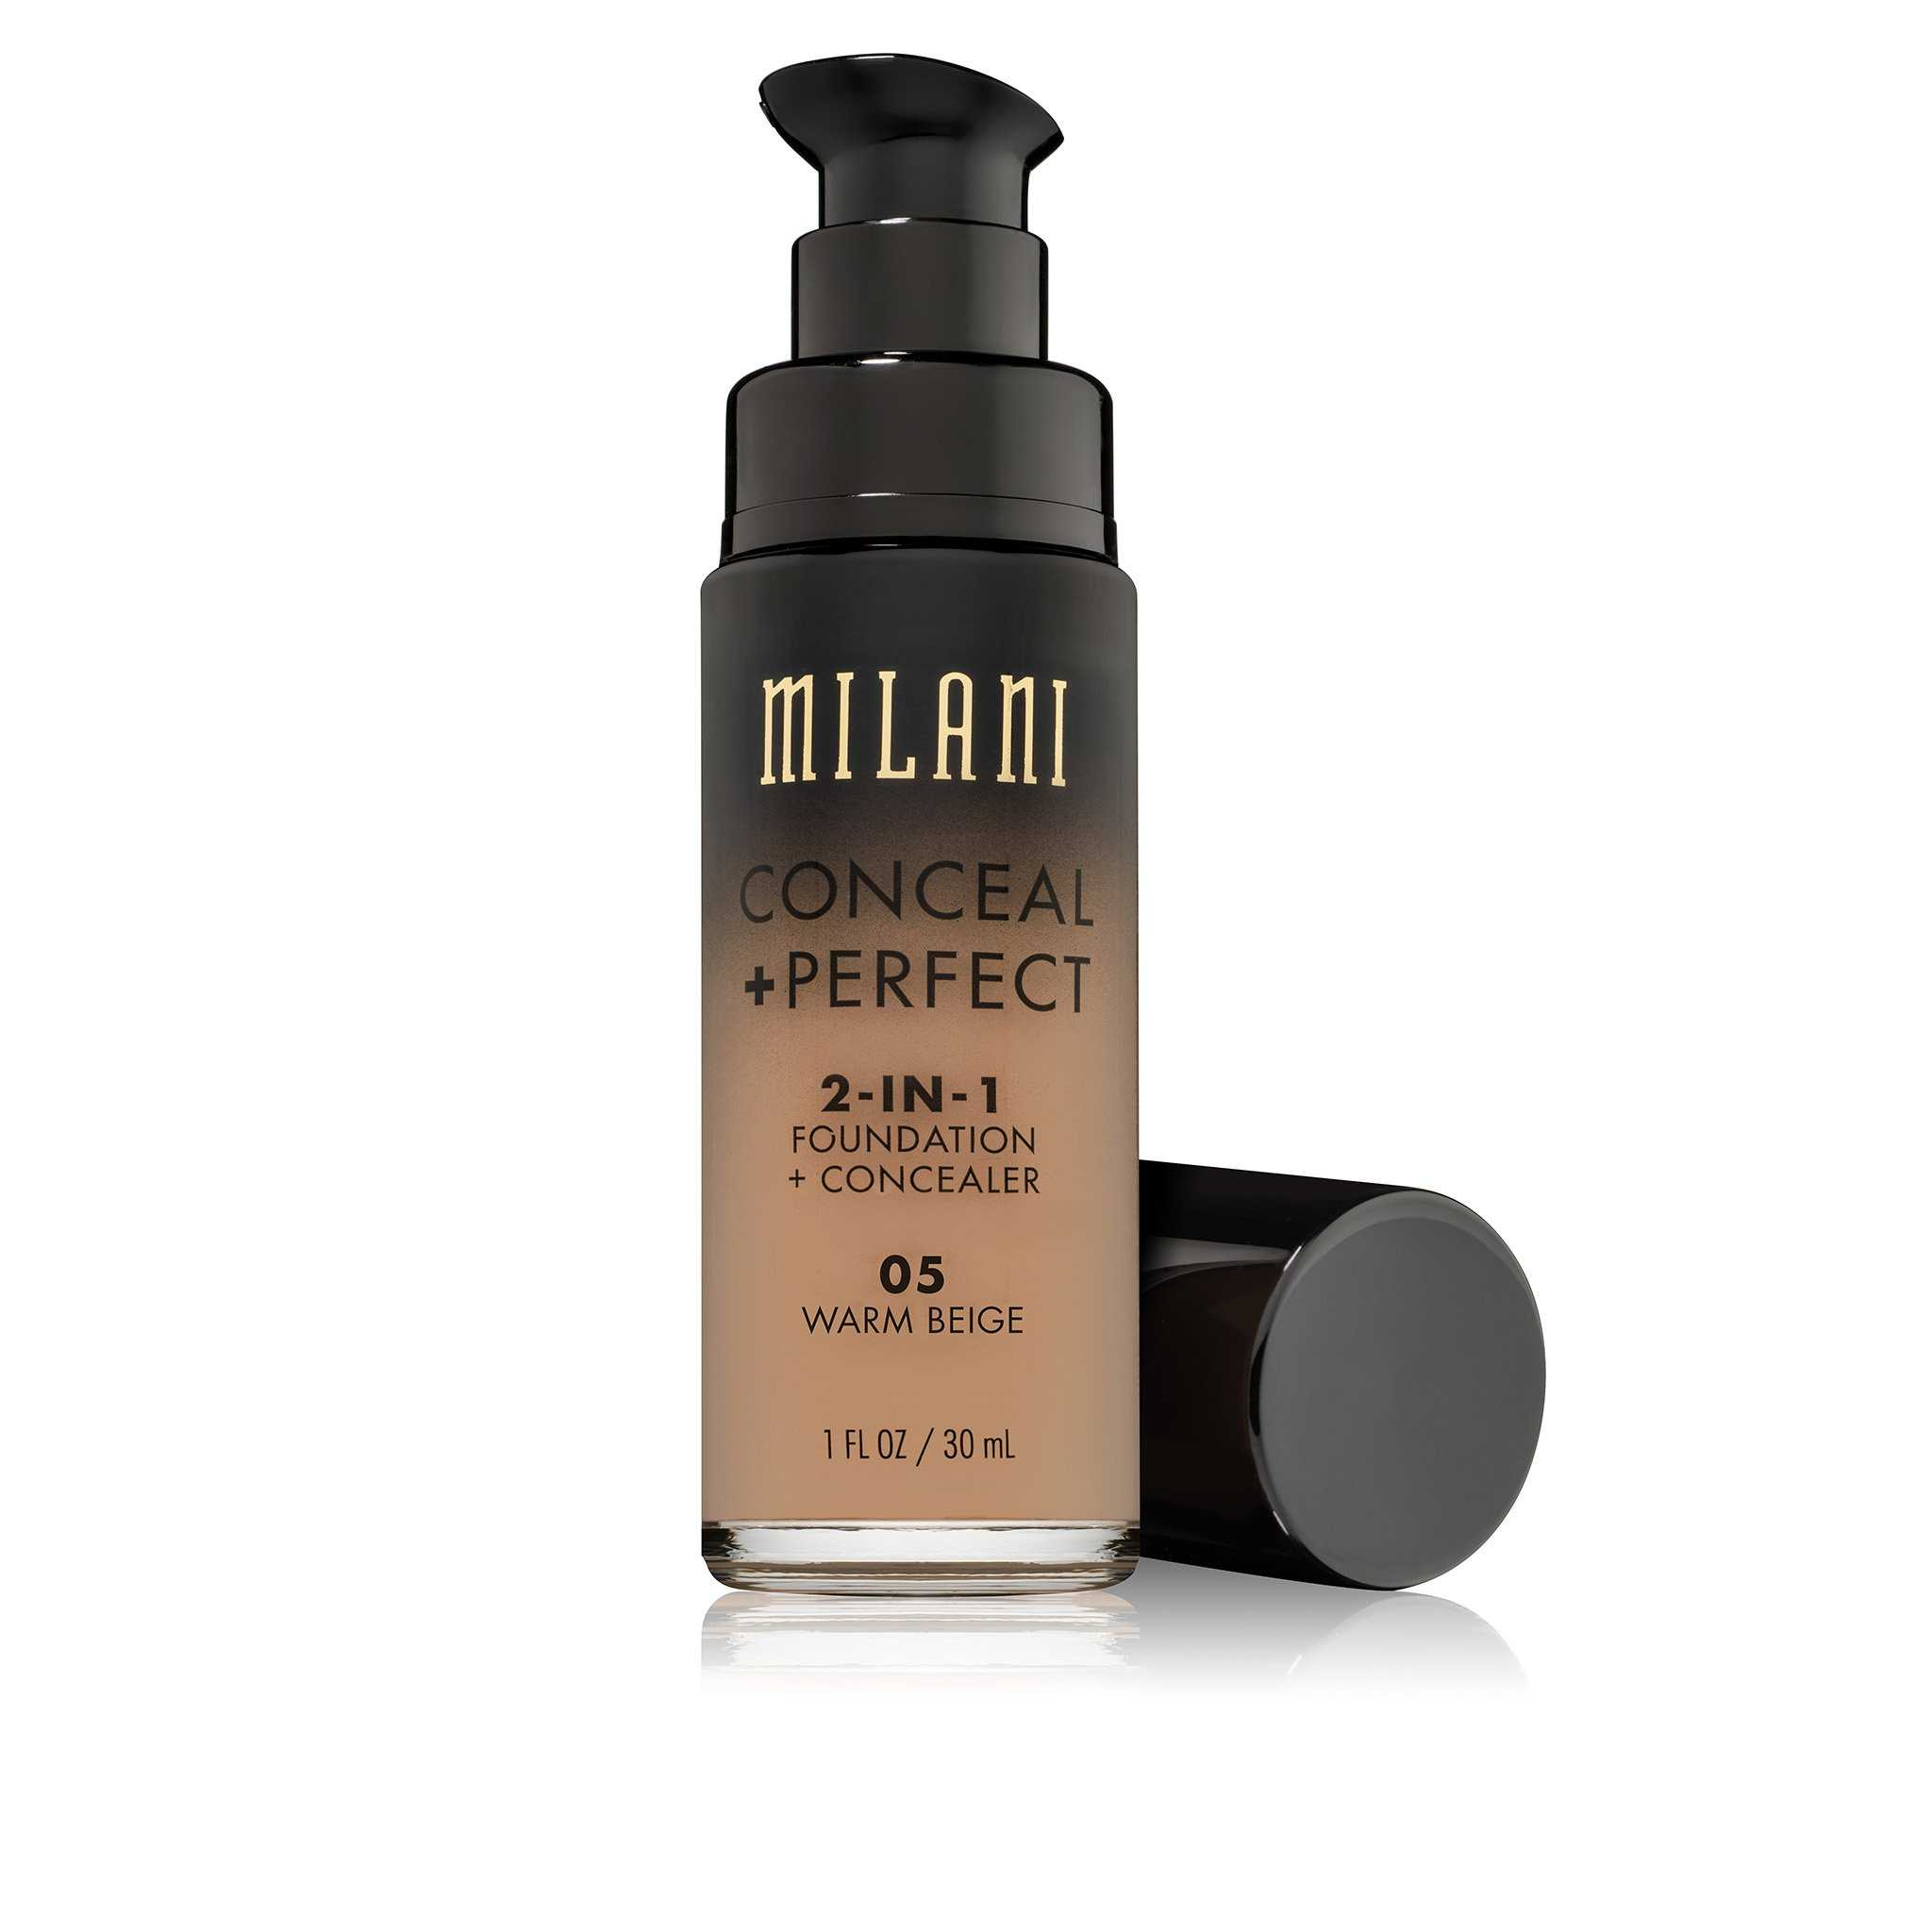 Milani - Conceal & Perfect 2-IN-1 Liquid Make up - 05 Warm Beige Light Medium with Warm Undertone